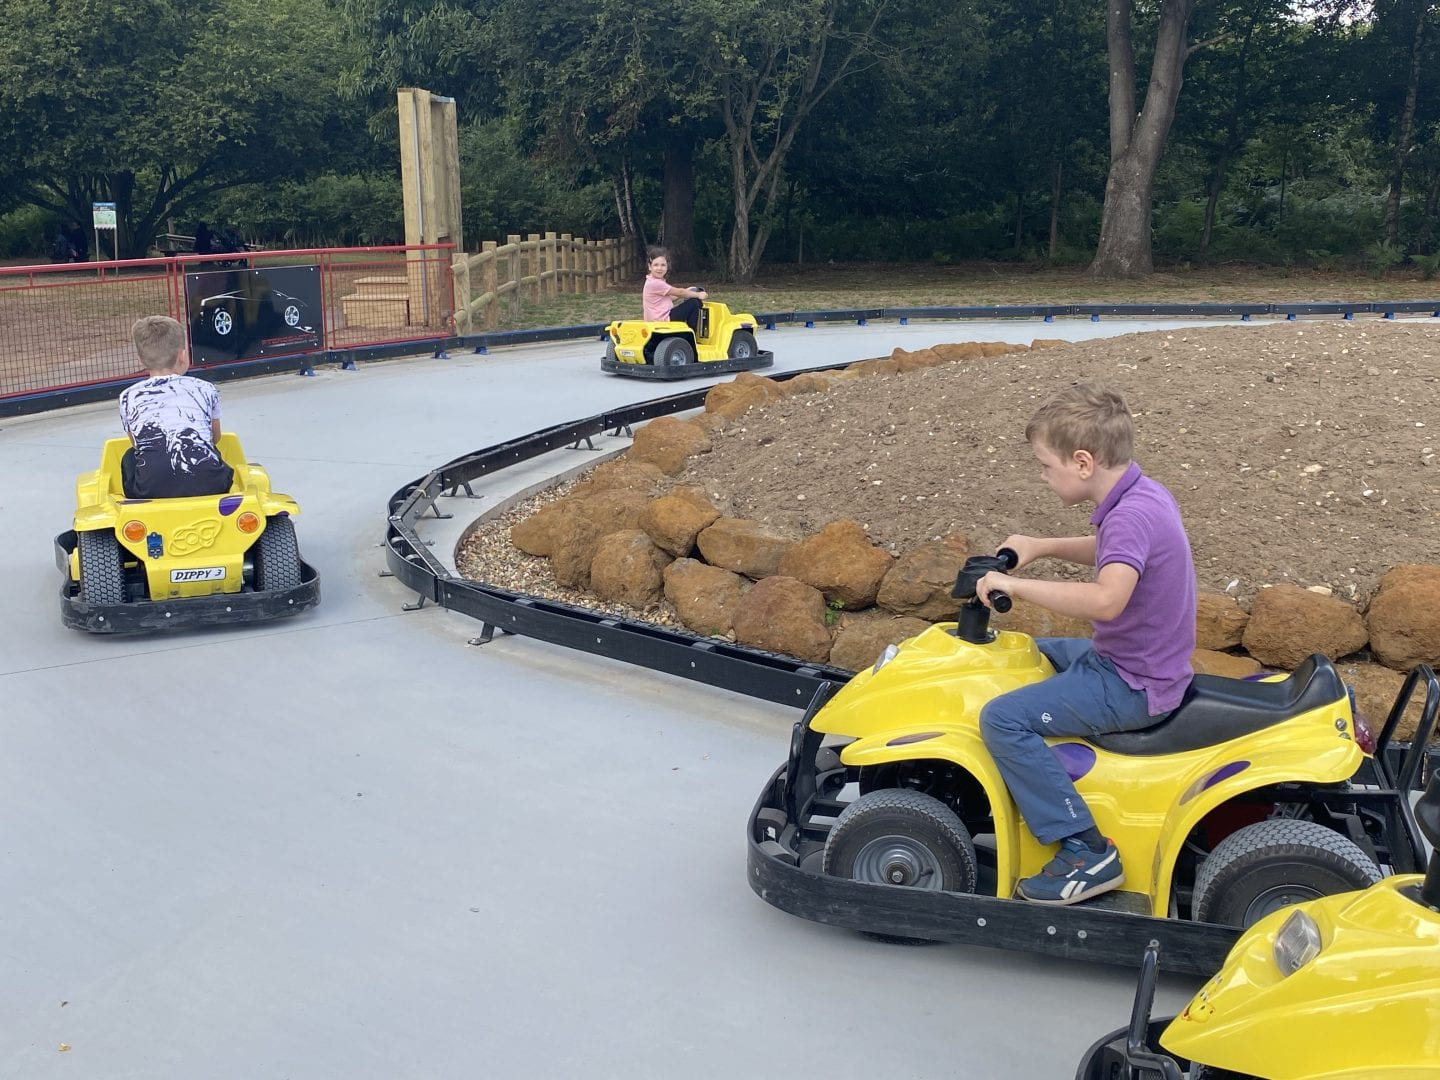 3 children riding on small electric cars around a track